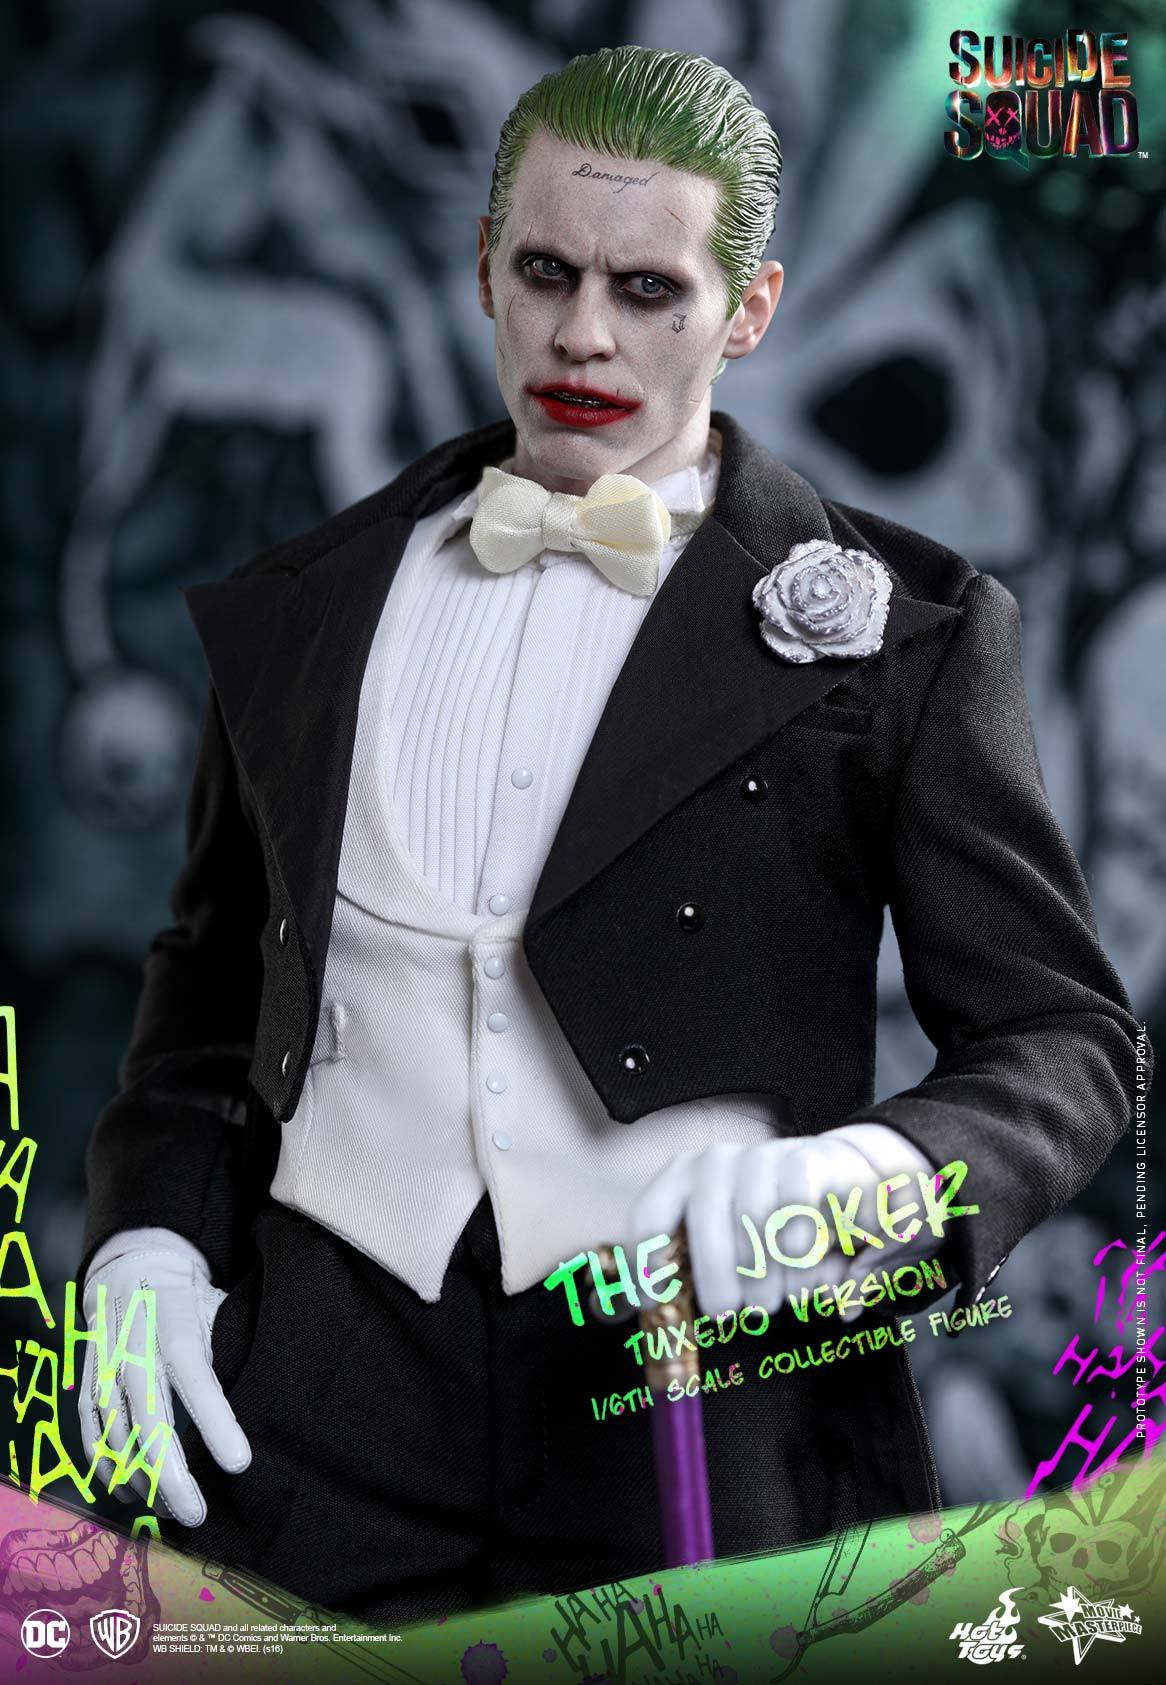 Hot Toys - MMS395 - Suicide Squad - The Joker (Tuxedo Version) - Marvelous Toys - 7